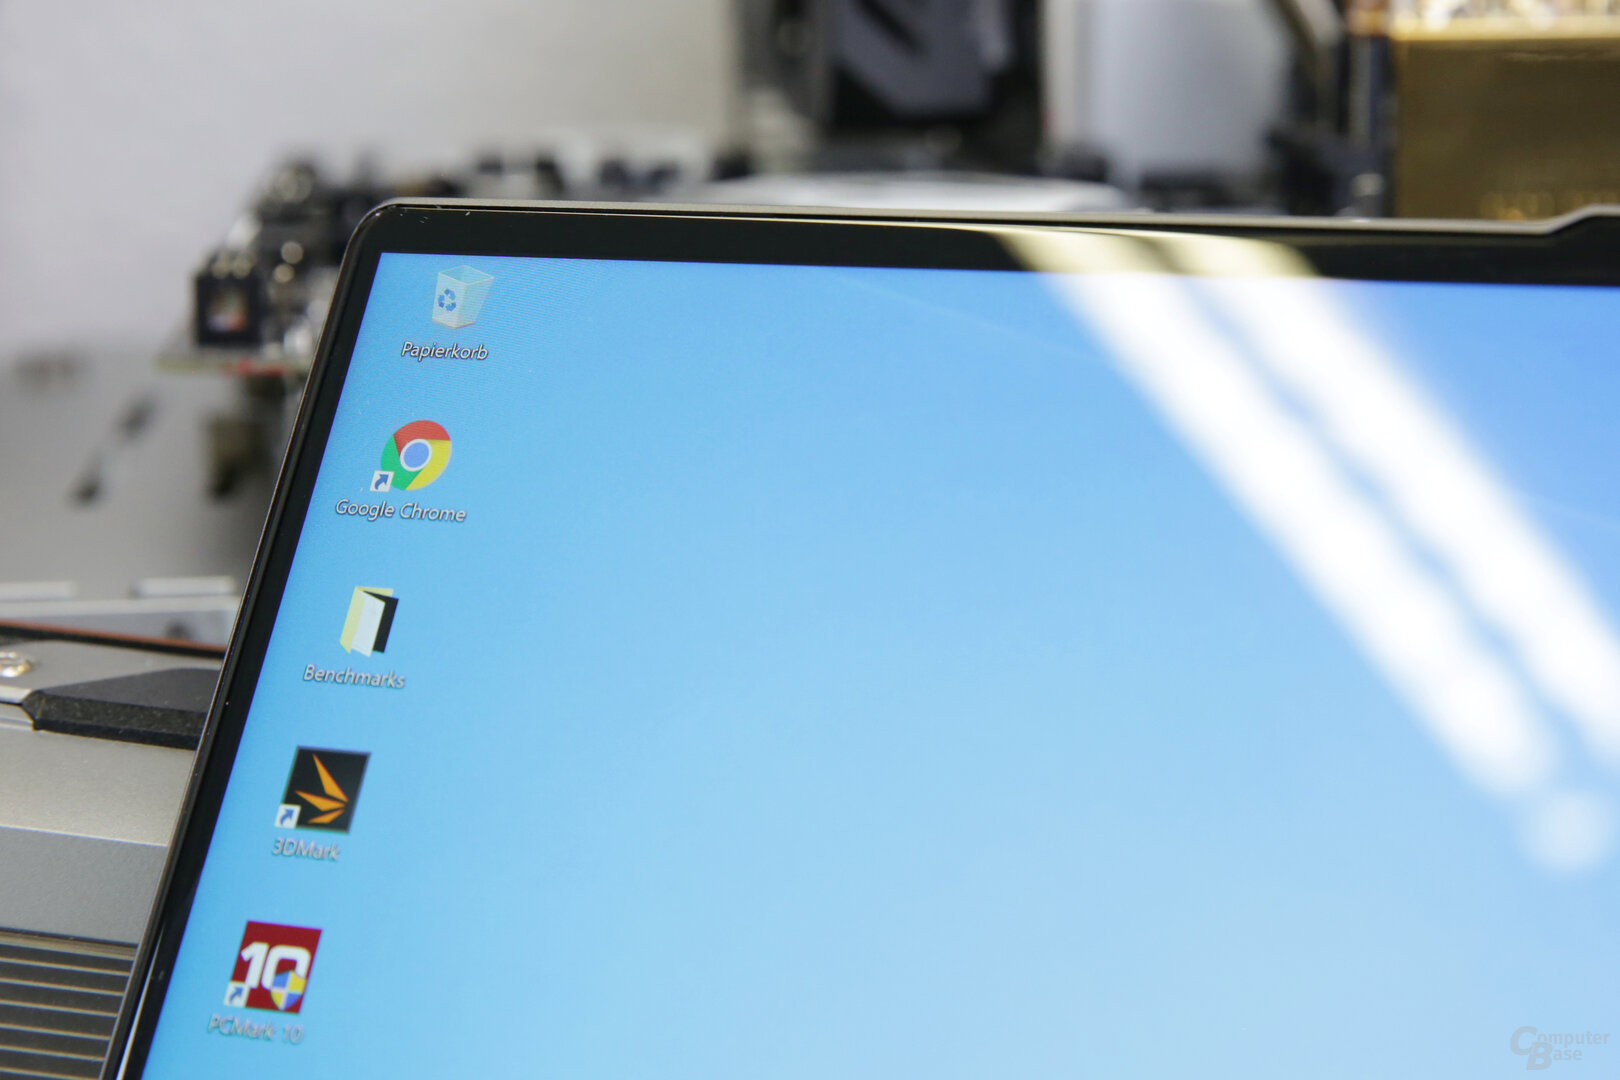 Lenovo closes the display with slightly curved glass